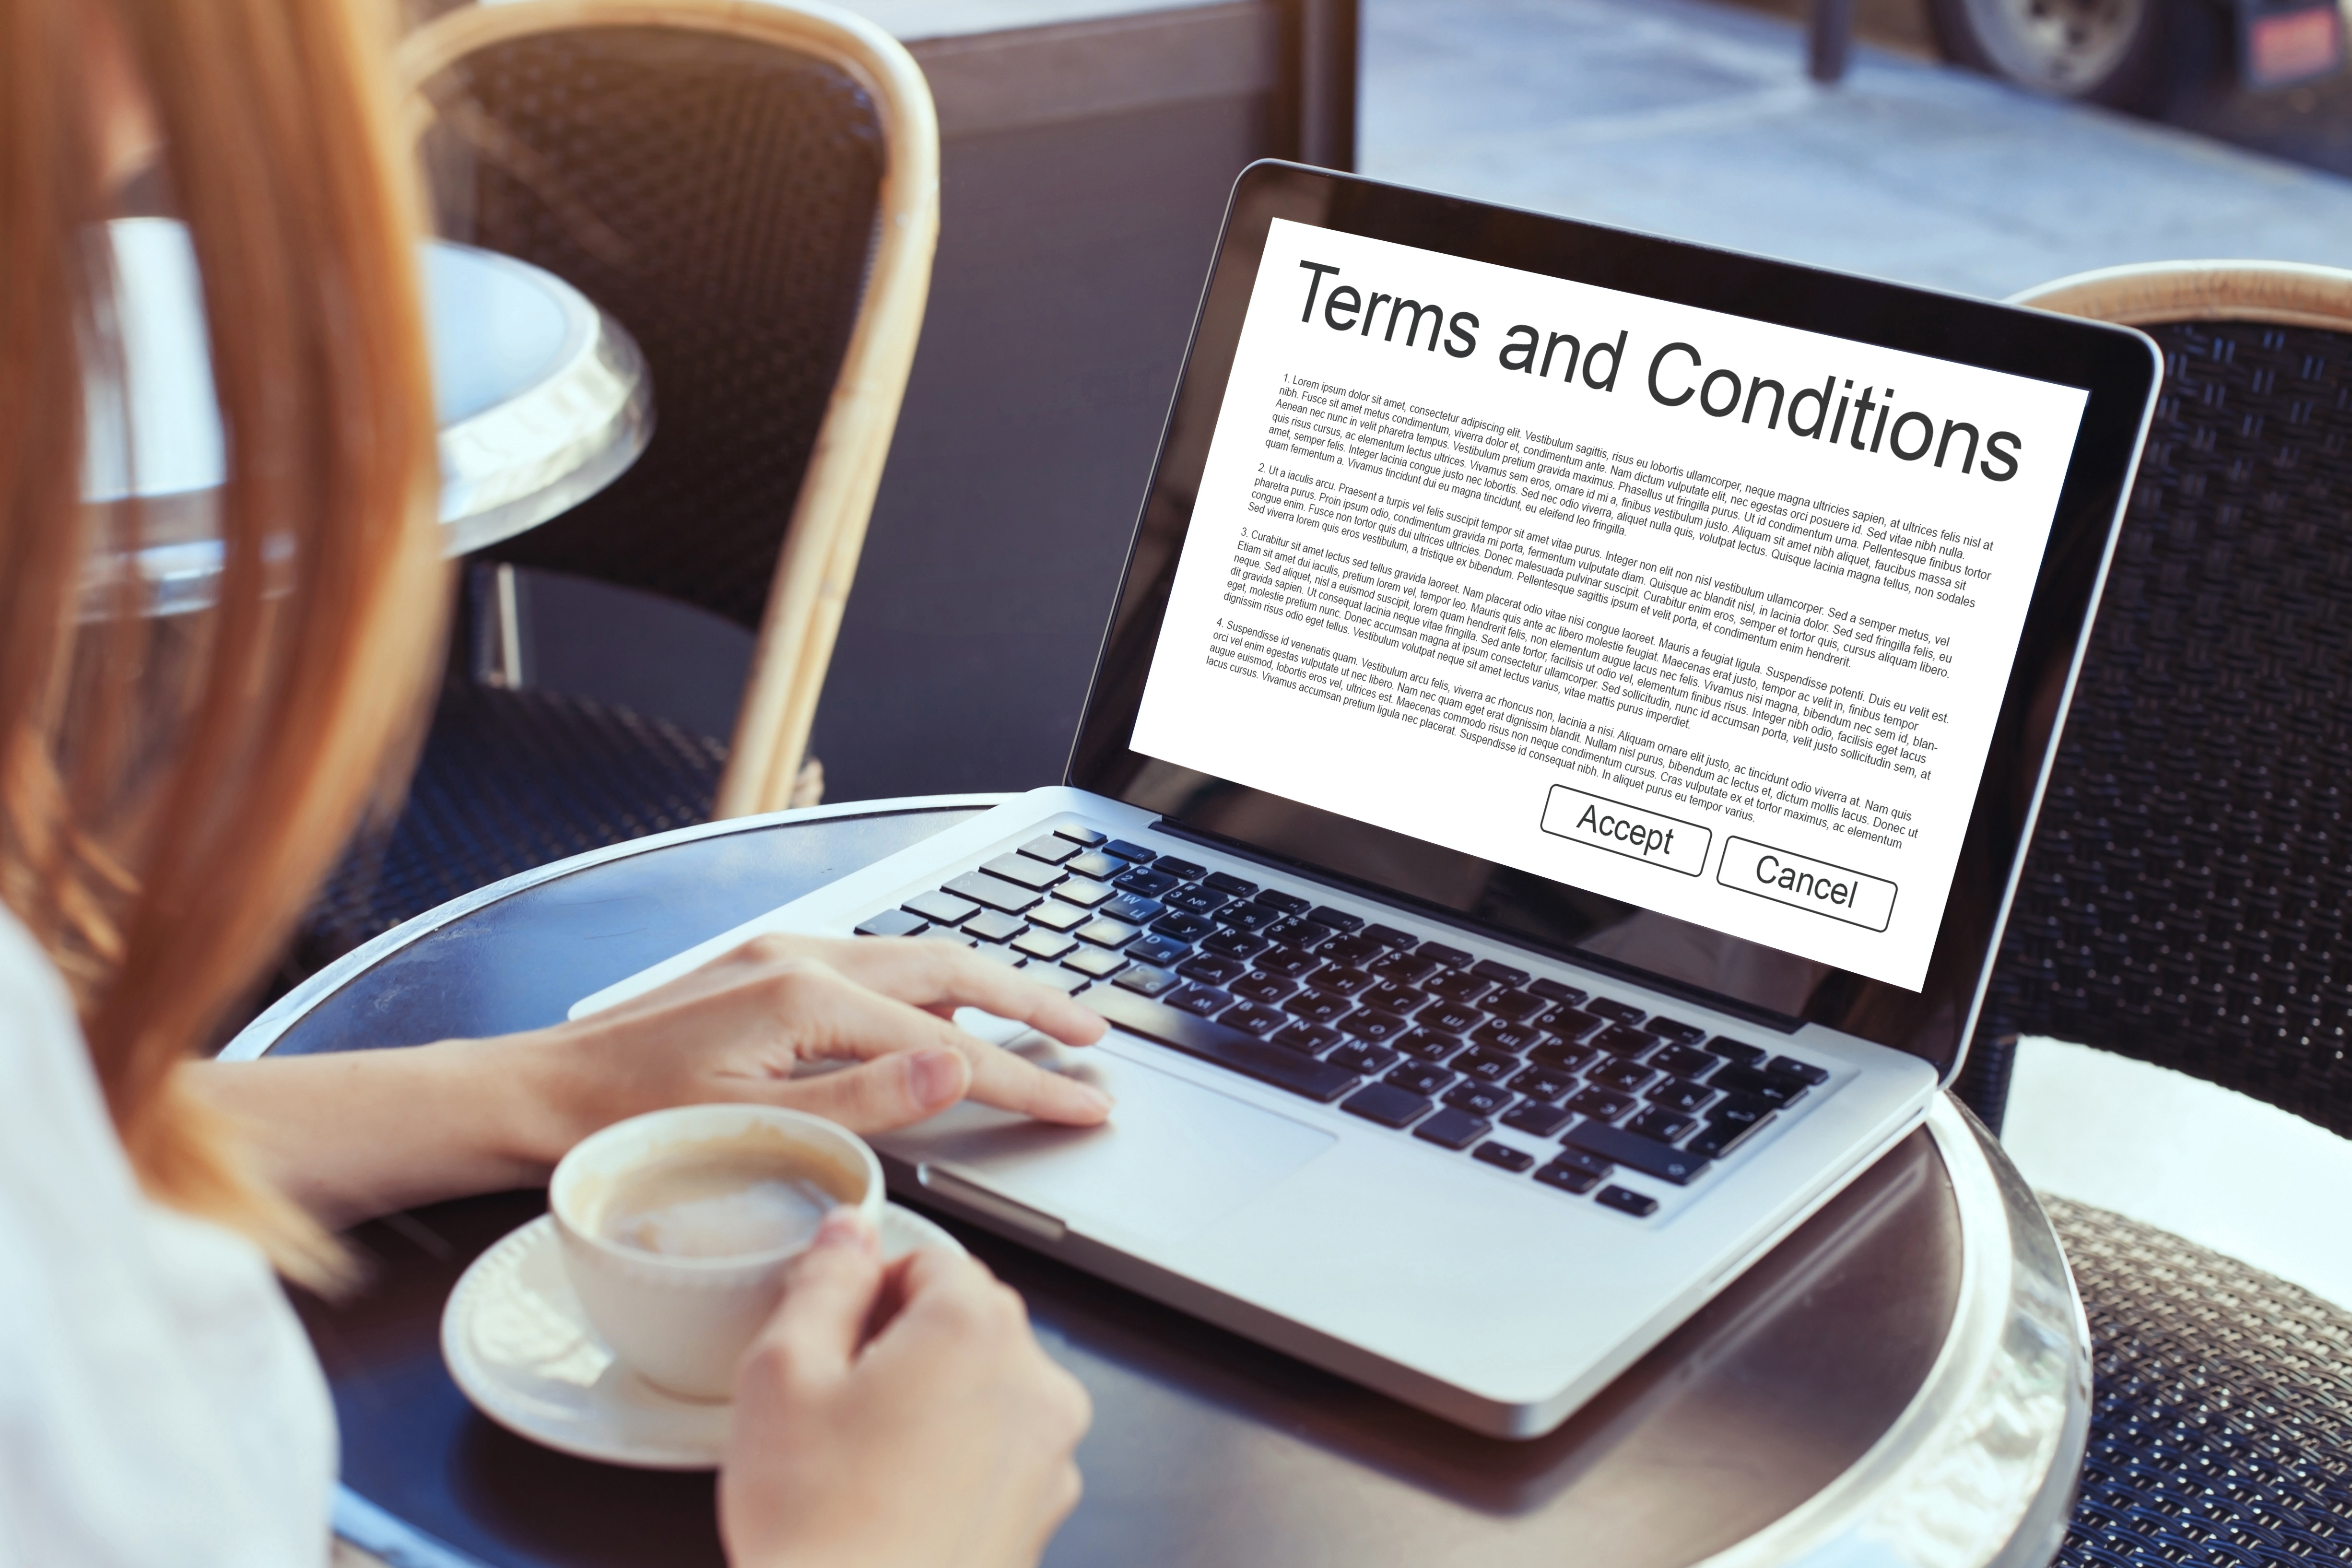 Terms and conditions of use is the concept on the screen of computer. (iStock)